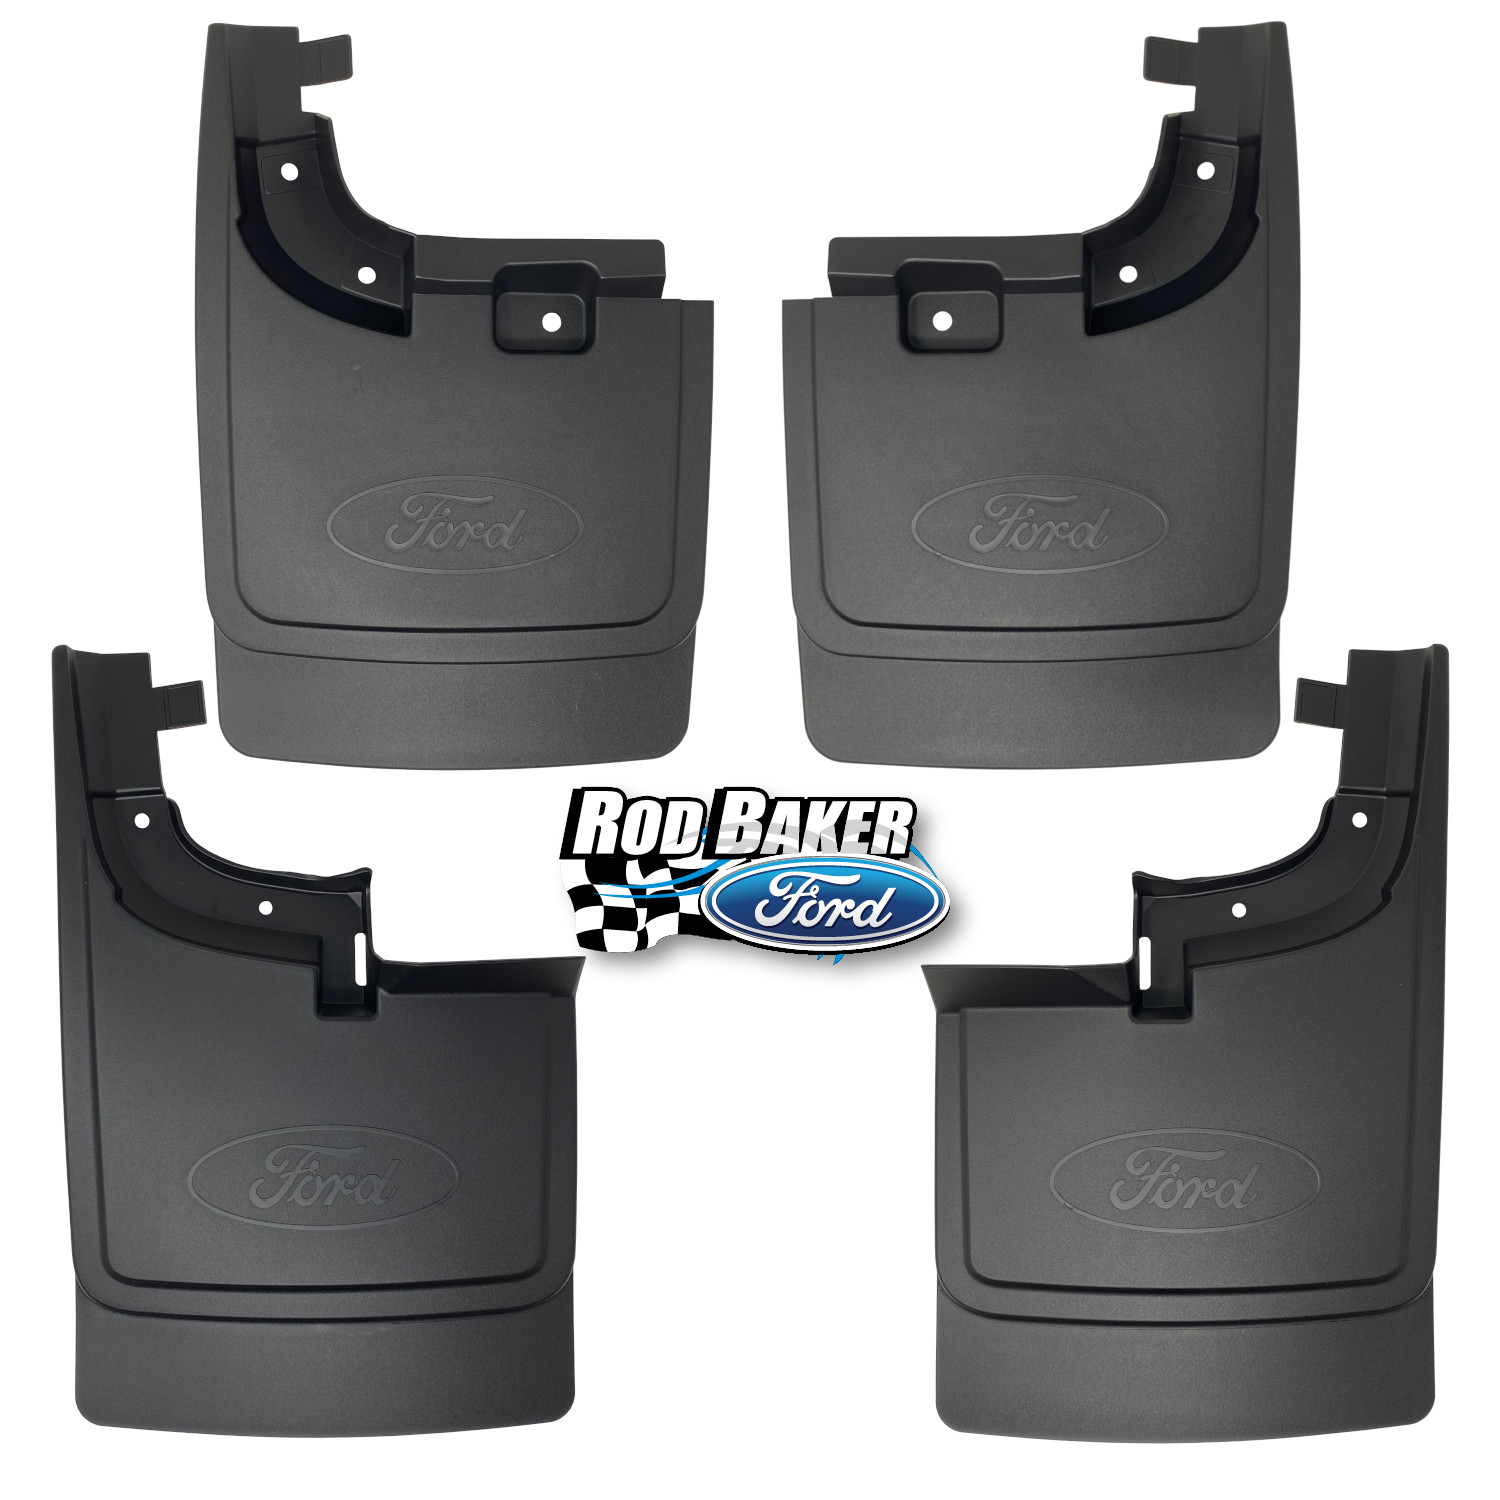 1 Pair Black Rear Left and Right Wheel Well Guards Flaps Fit for Ford F250 F350 Super Duty 2017 2018 2019